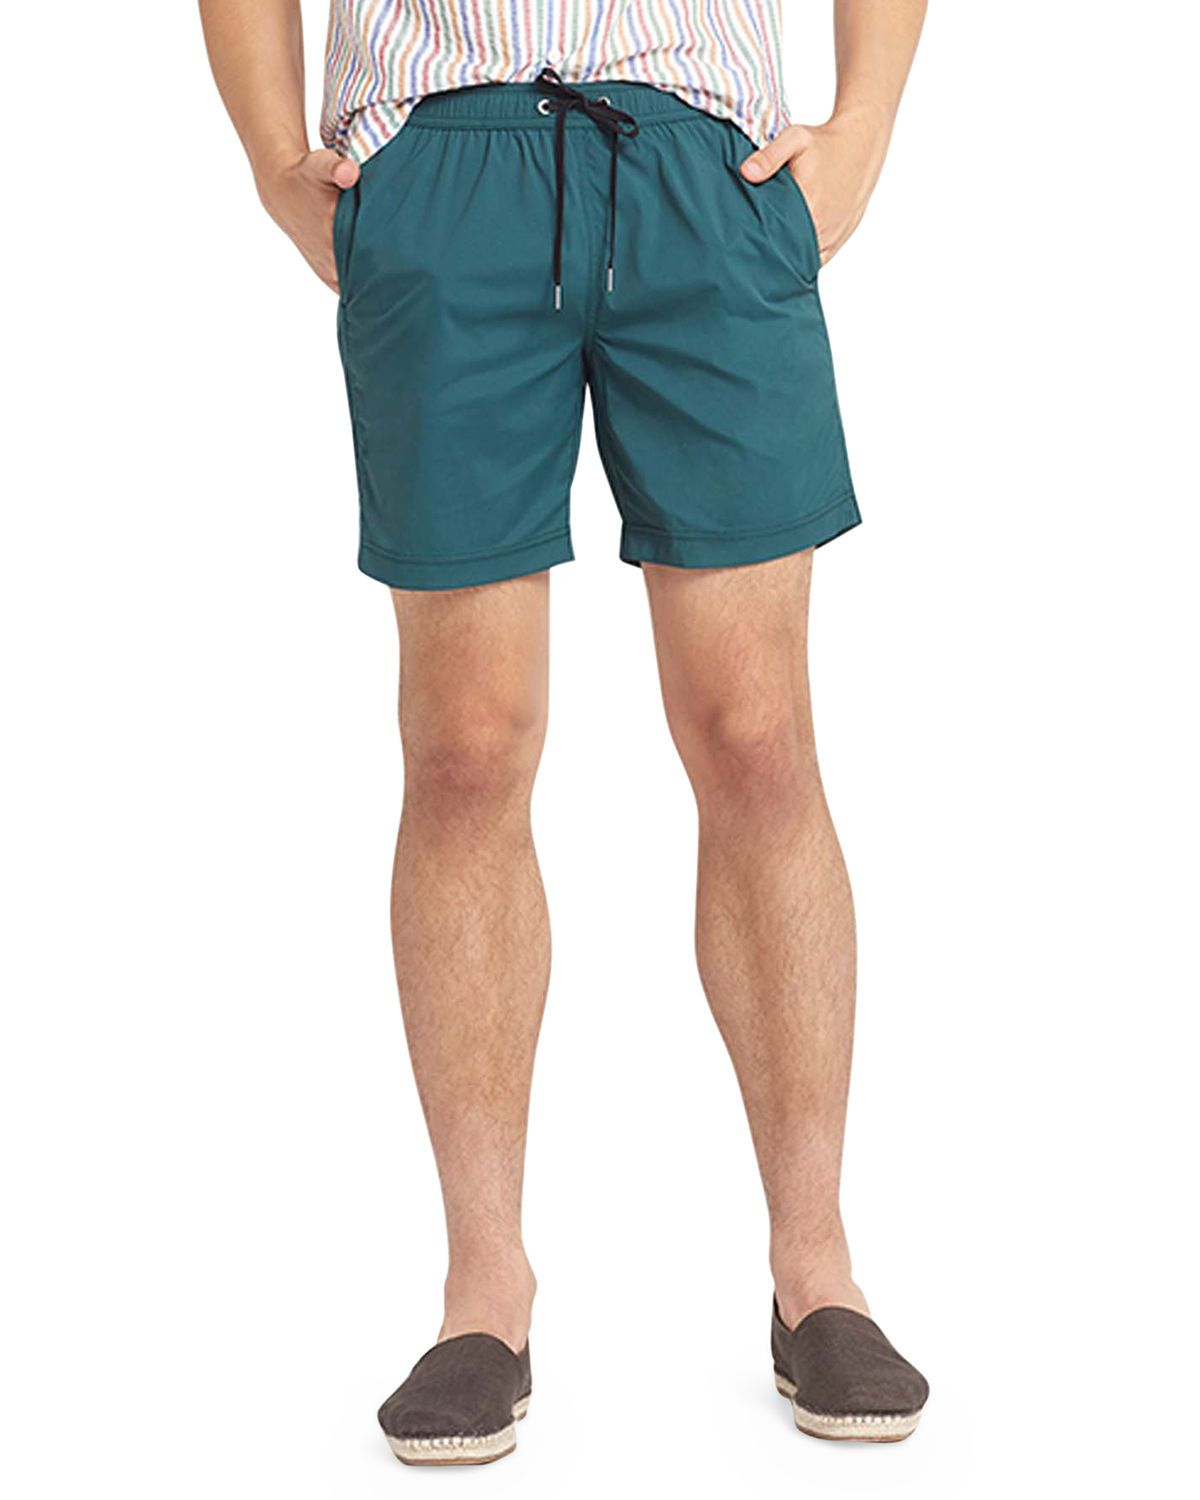 f405f035f1 ONIA MEN'S CHARLES SWIM TRUNKS. #onia #cloth | Onia in 2019 ...